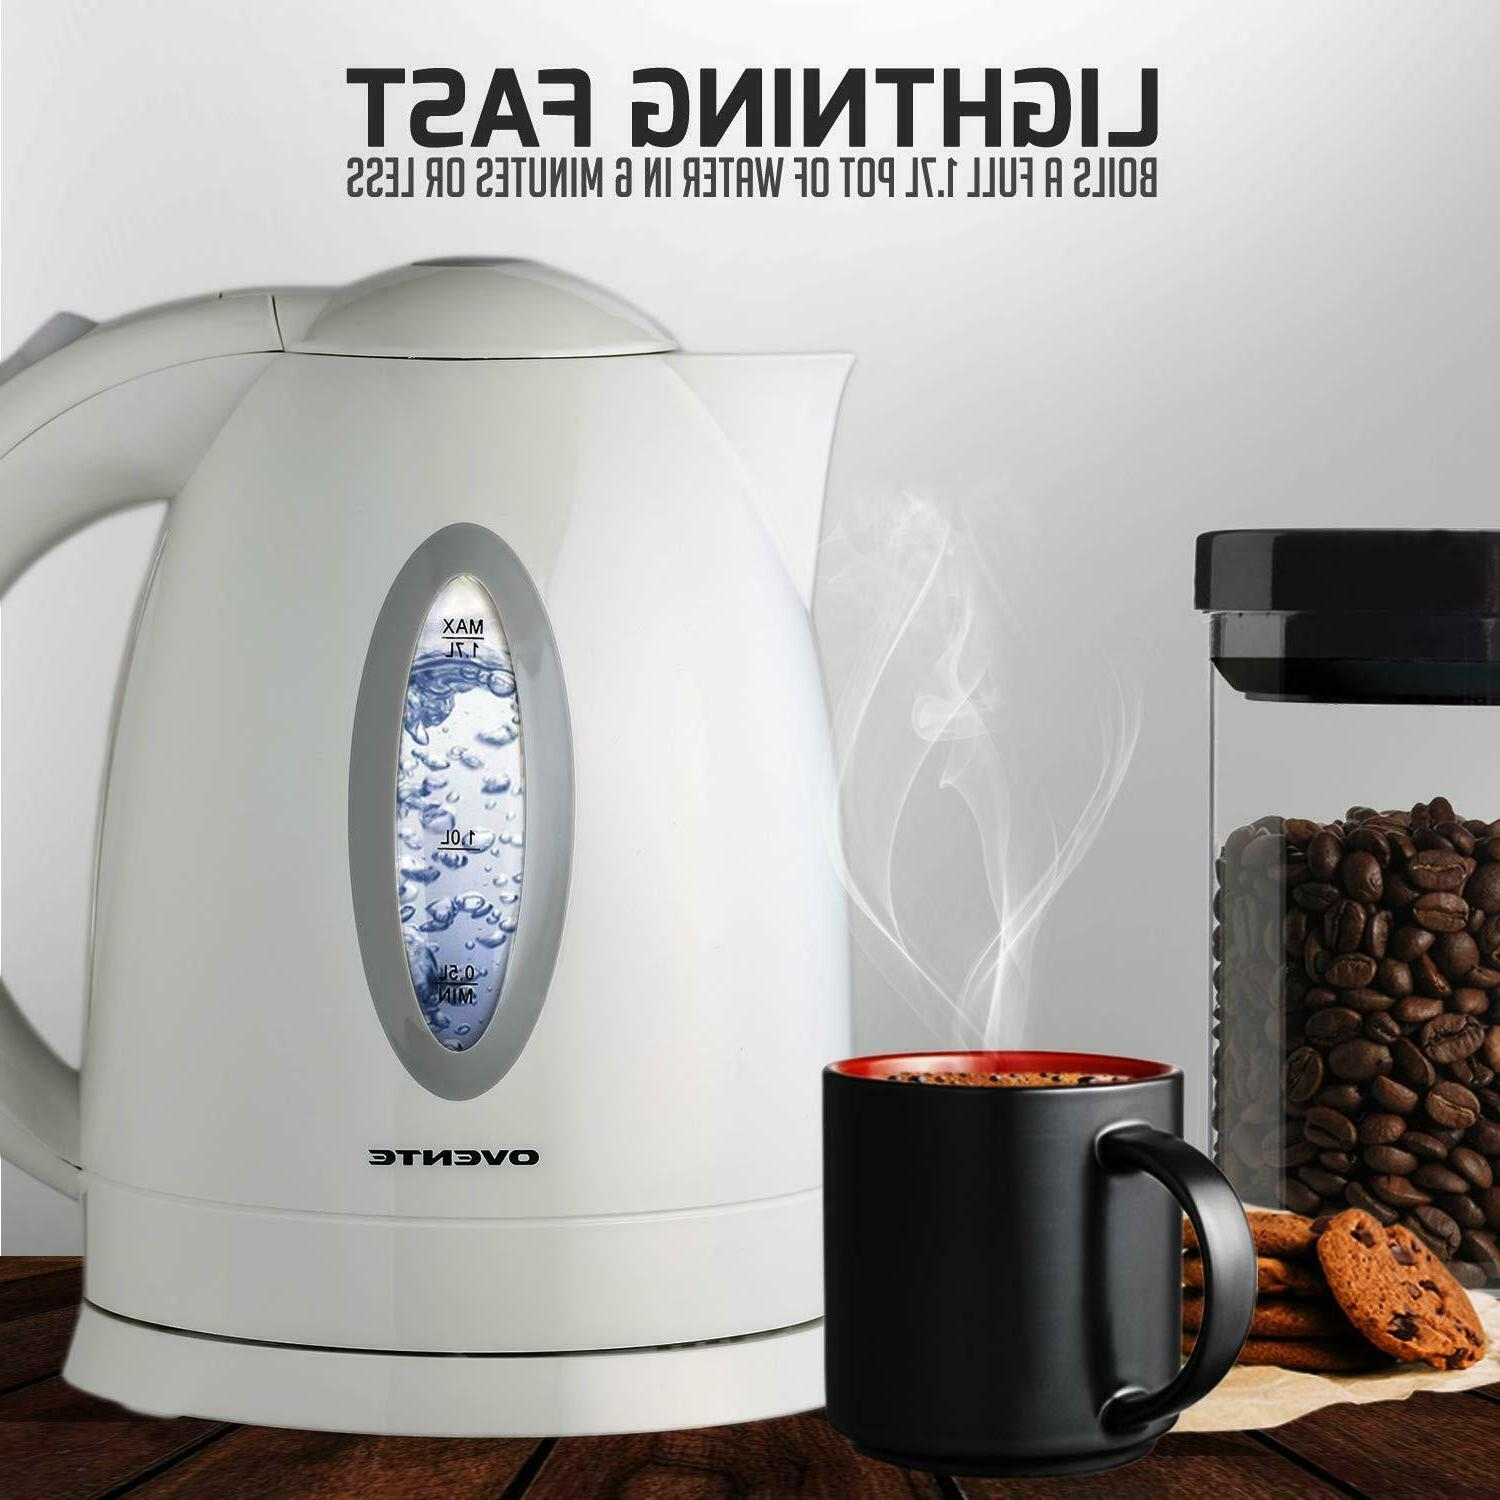 Electric Tea Stainless Steel Hot Cordless Boiler